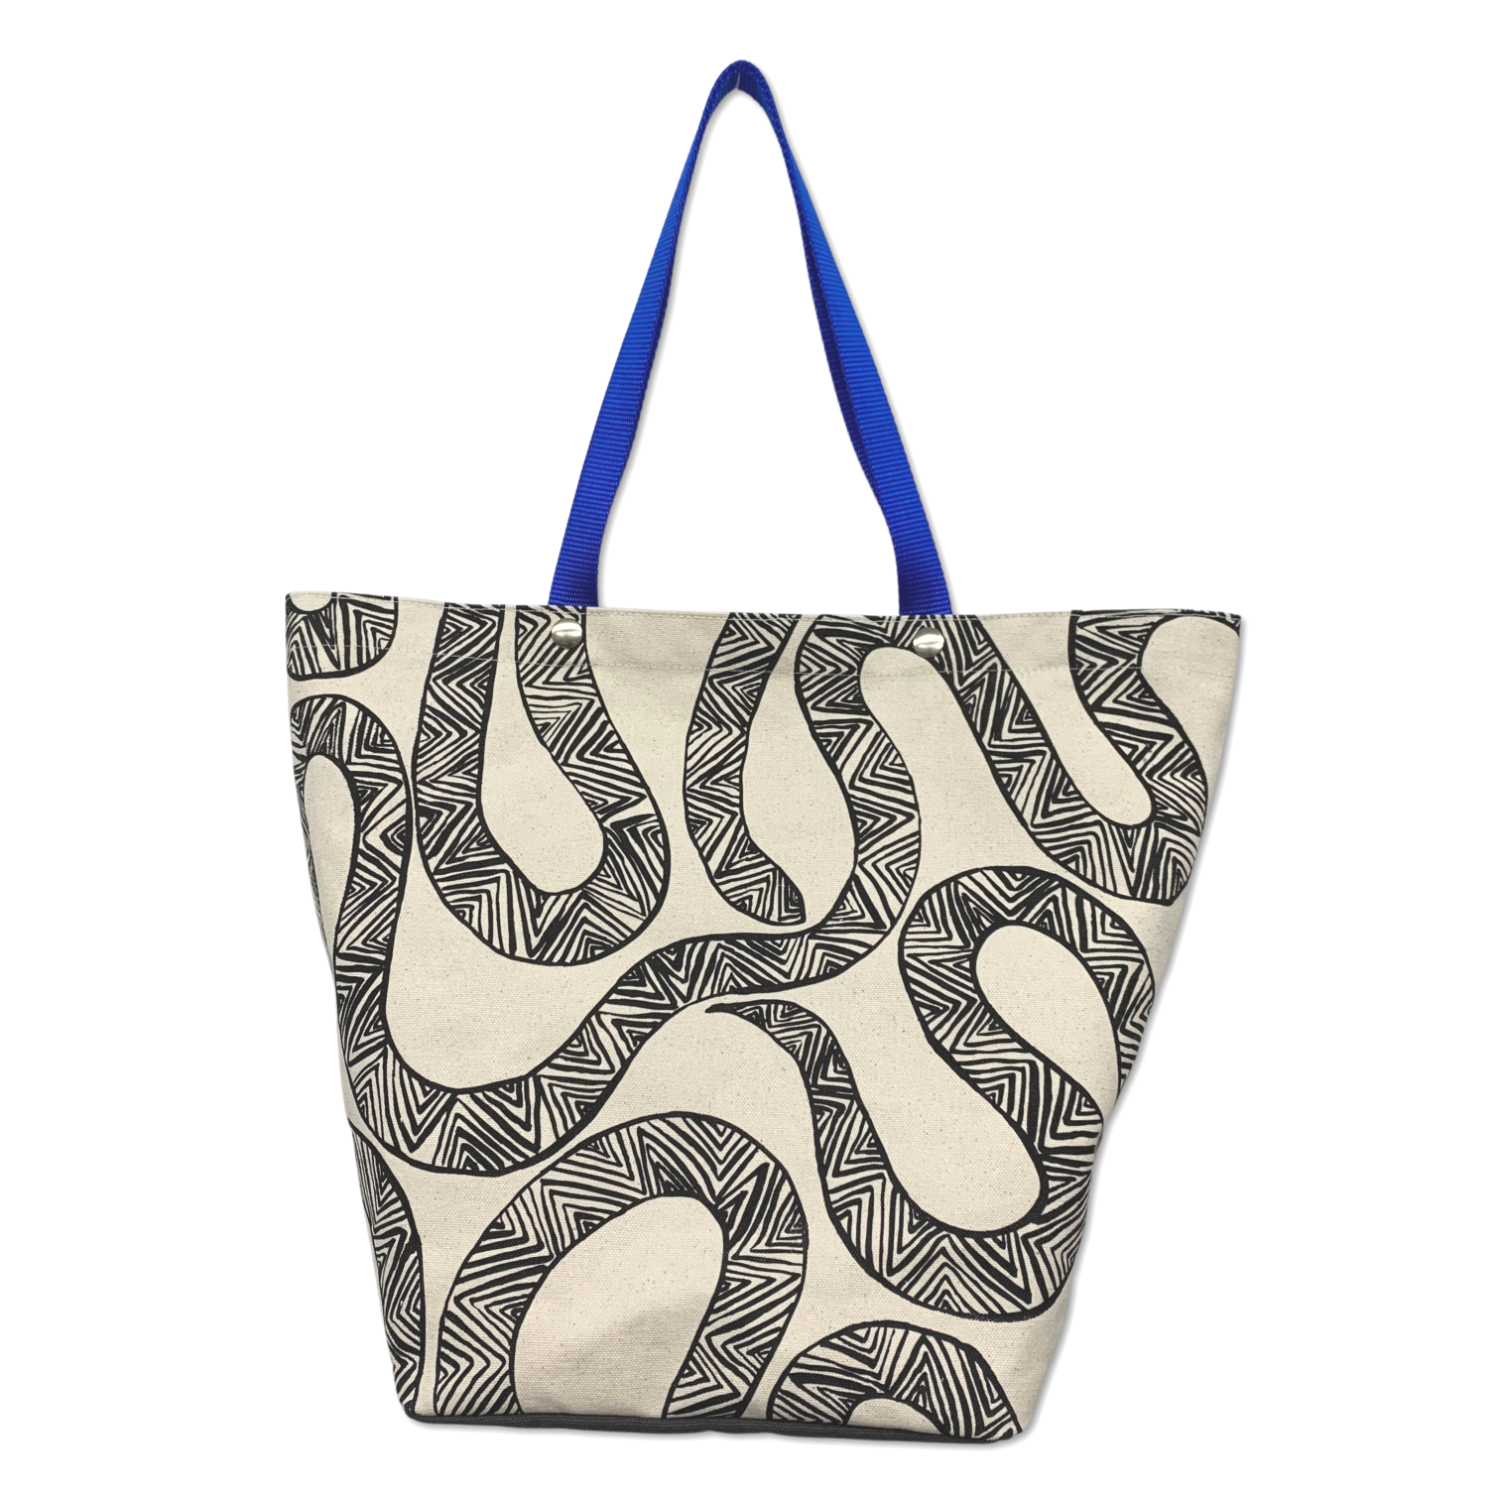 OOAK Vessel Tote Bag - 'Serpent'